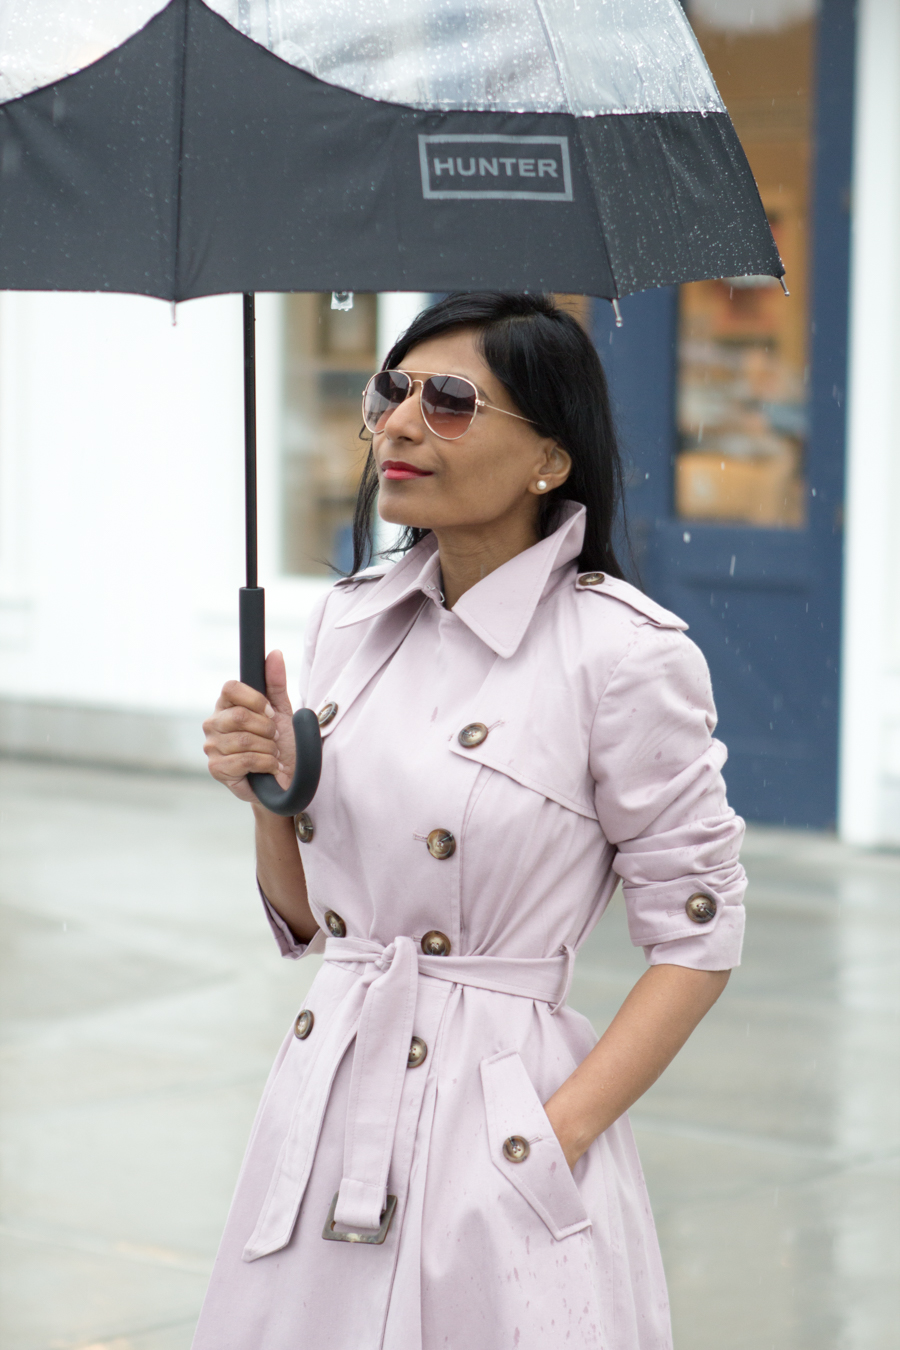 trench, trench coat, rain coat, spring topper, easy chic, preppy chic, blush coat, blush sandals, red lips, hunter, mommy style, mom style, petite fashion, boston, indian blogger